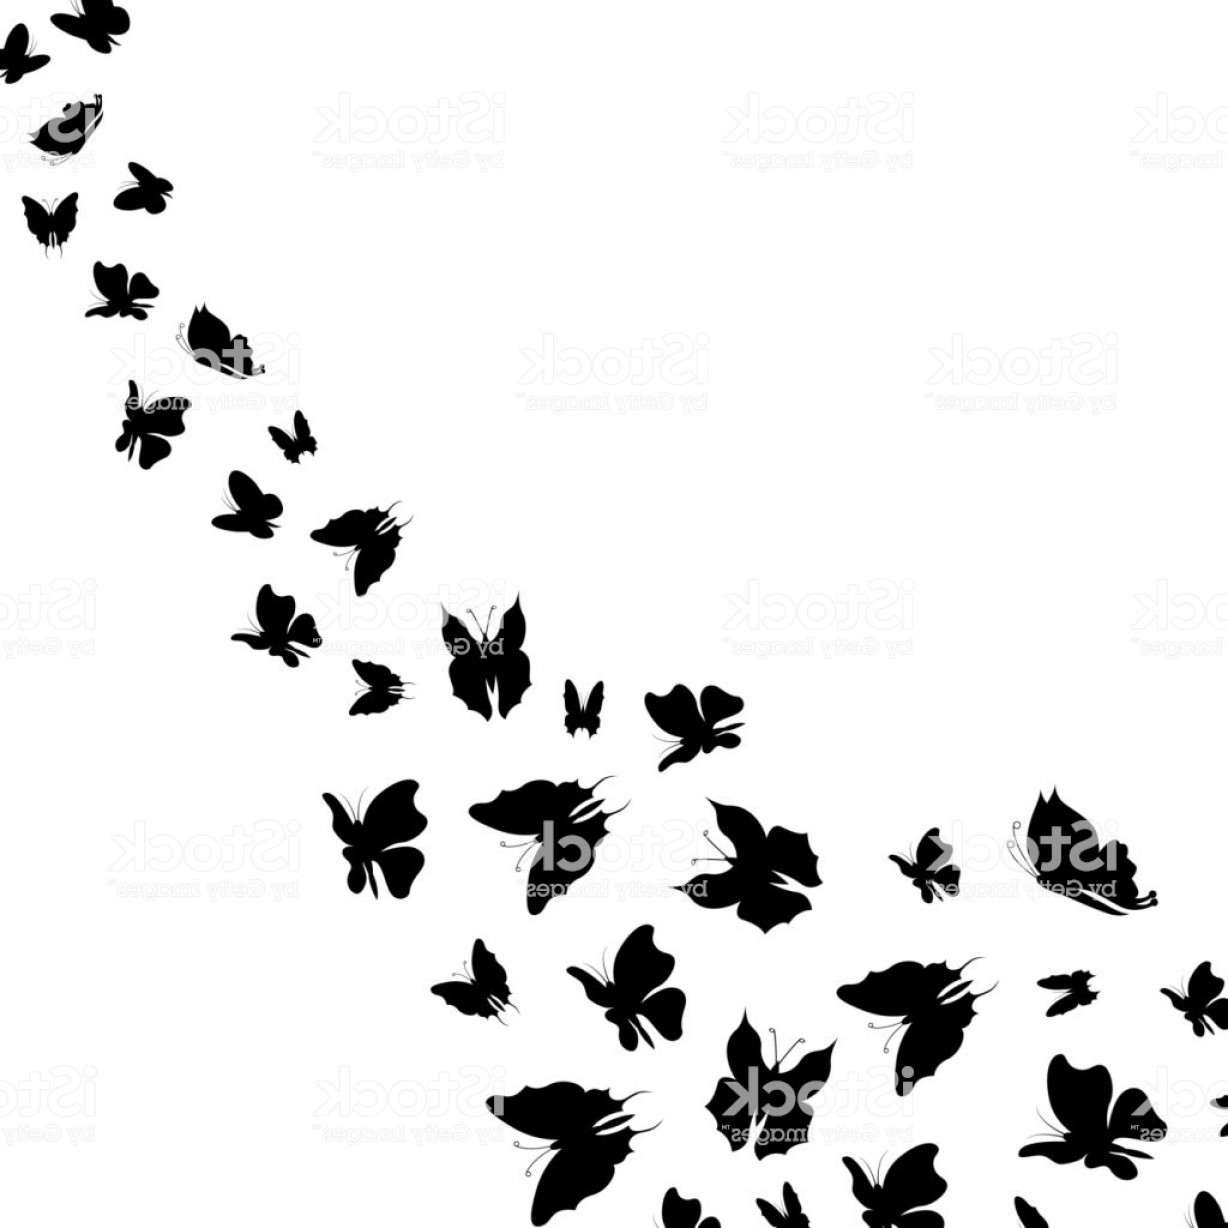 Butterly Vector: Silhouette Black Fly Flock Of Butterflies Vector Gm